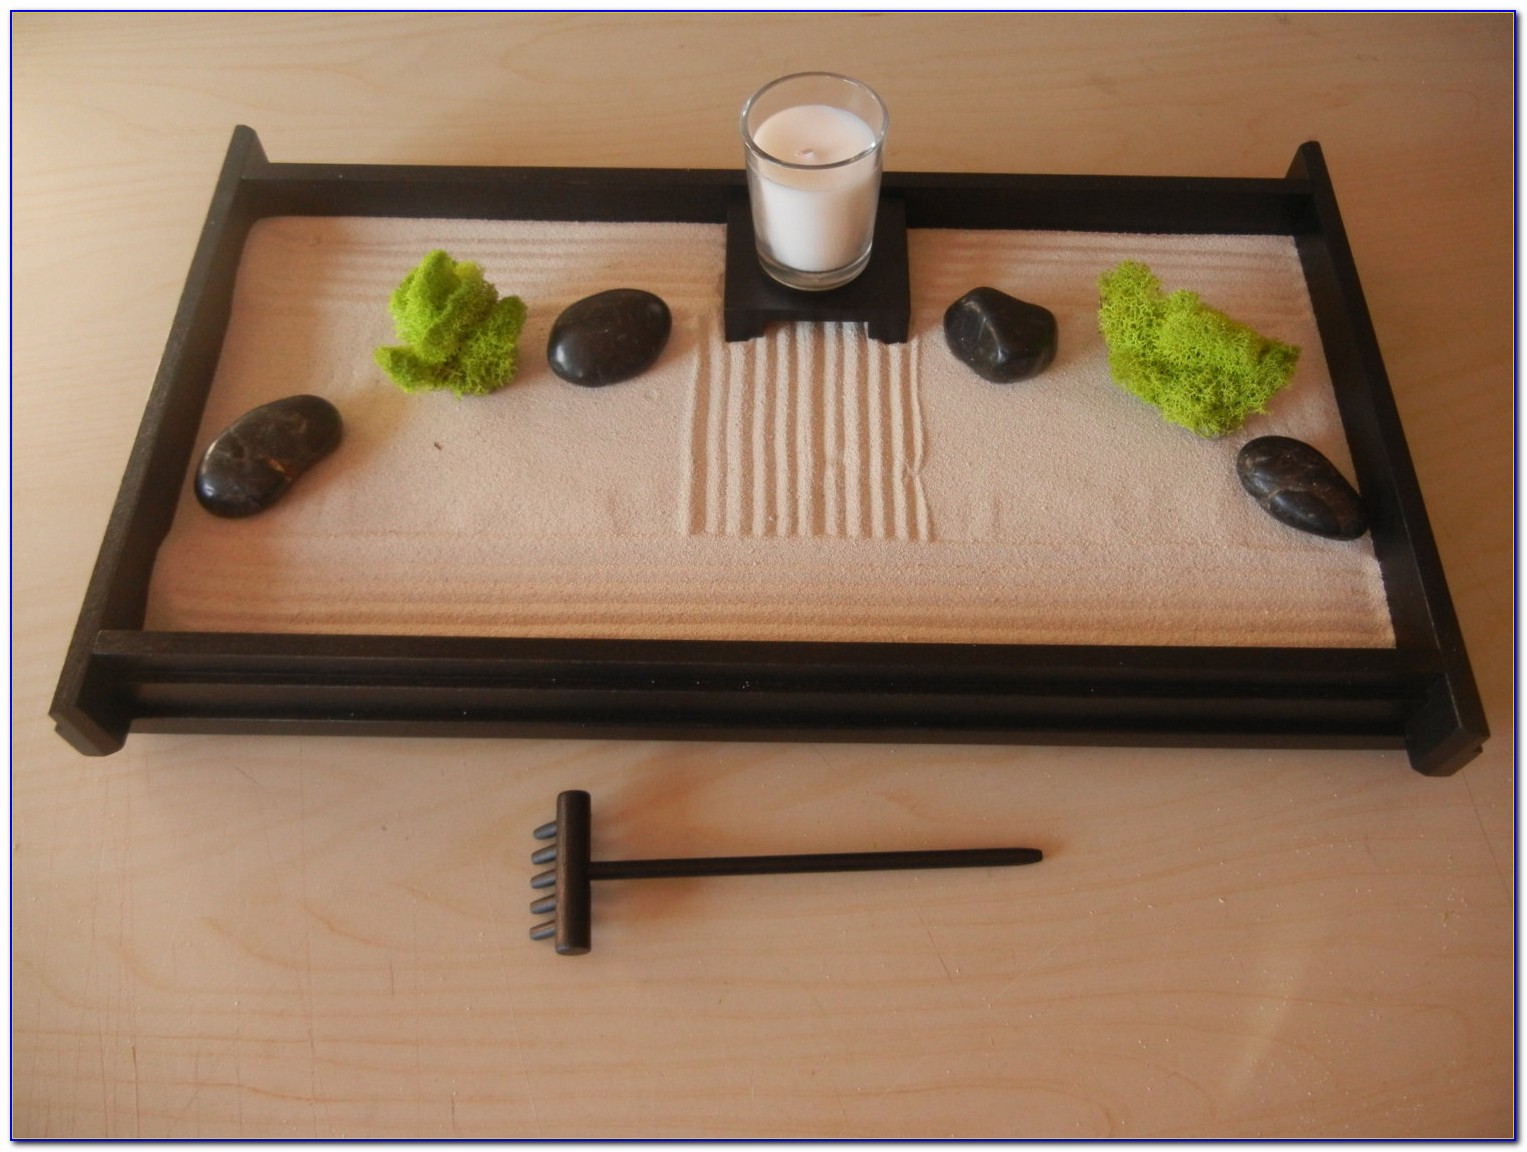 Tabletop Zen Garden Nz